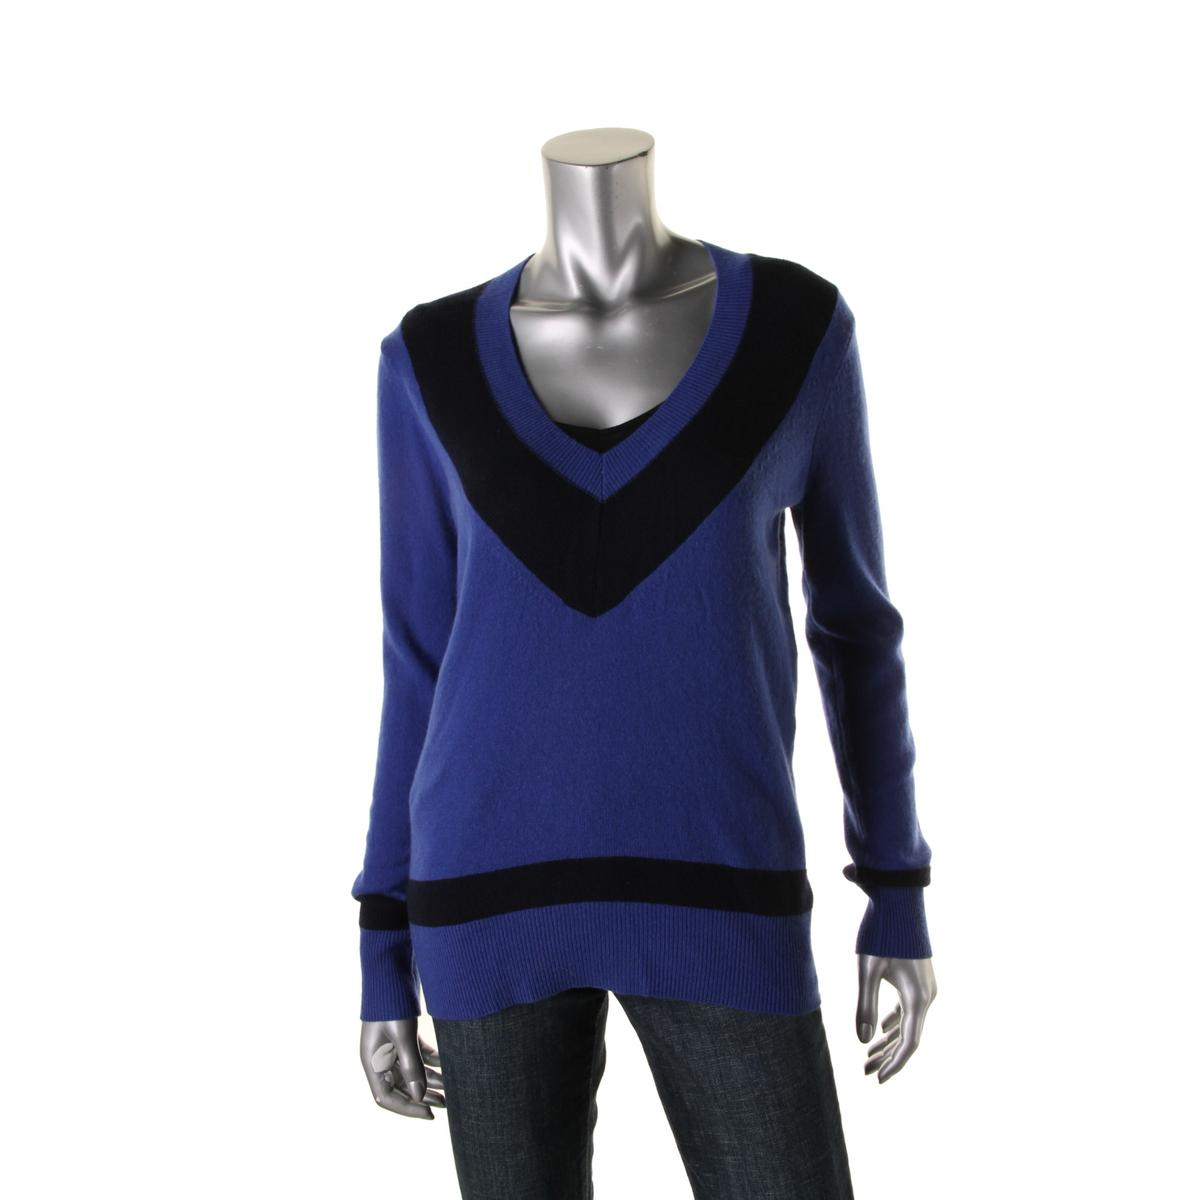 aqua 5579 womens cashmere v neck contrast trim pullover sweater top bhfo. Black Bedroom Furniture Sets. Home Design Ideas